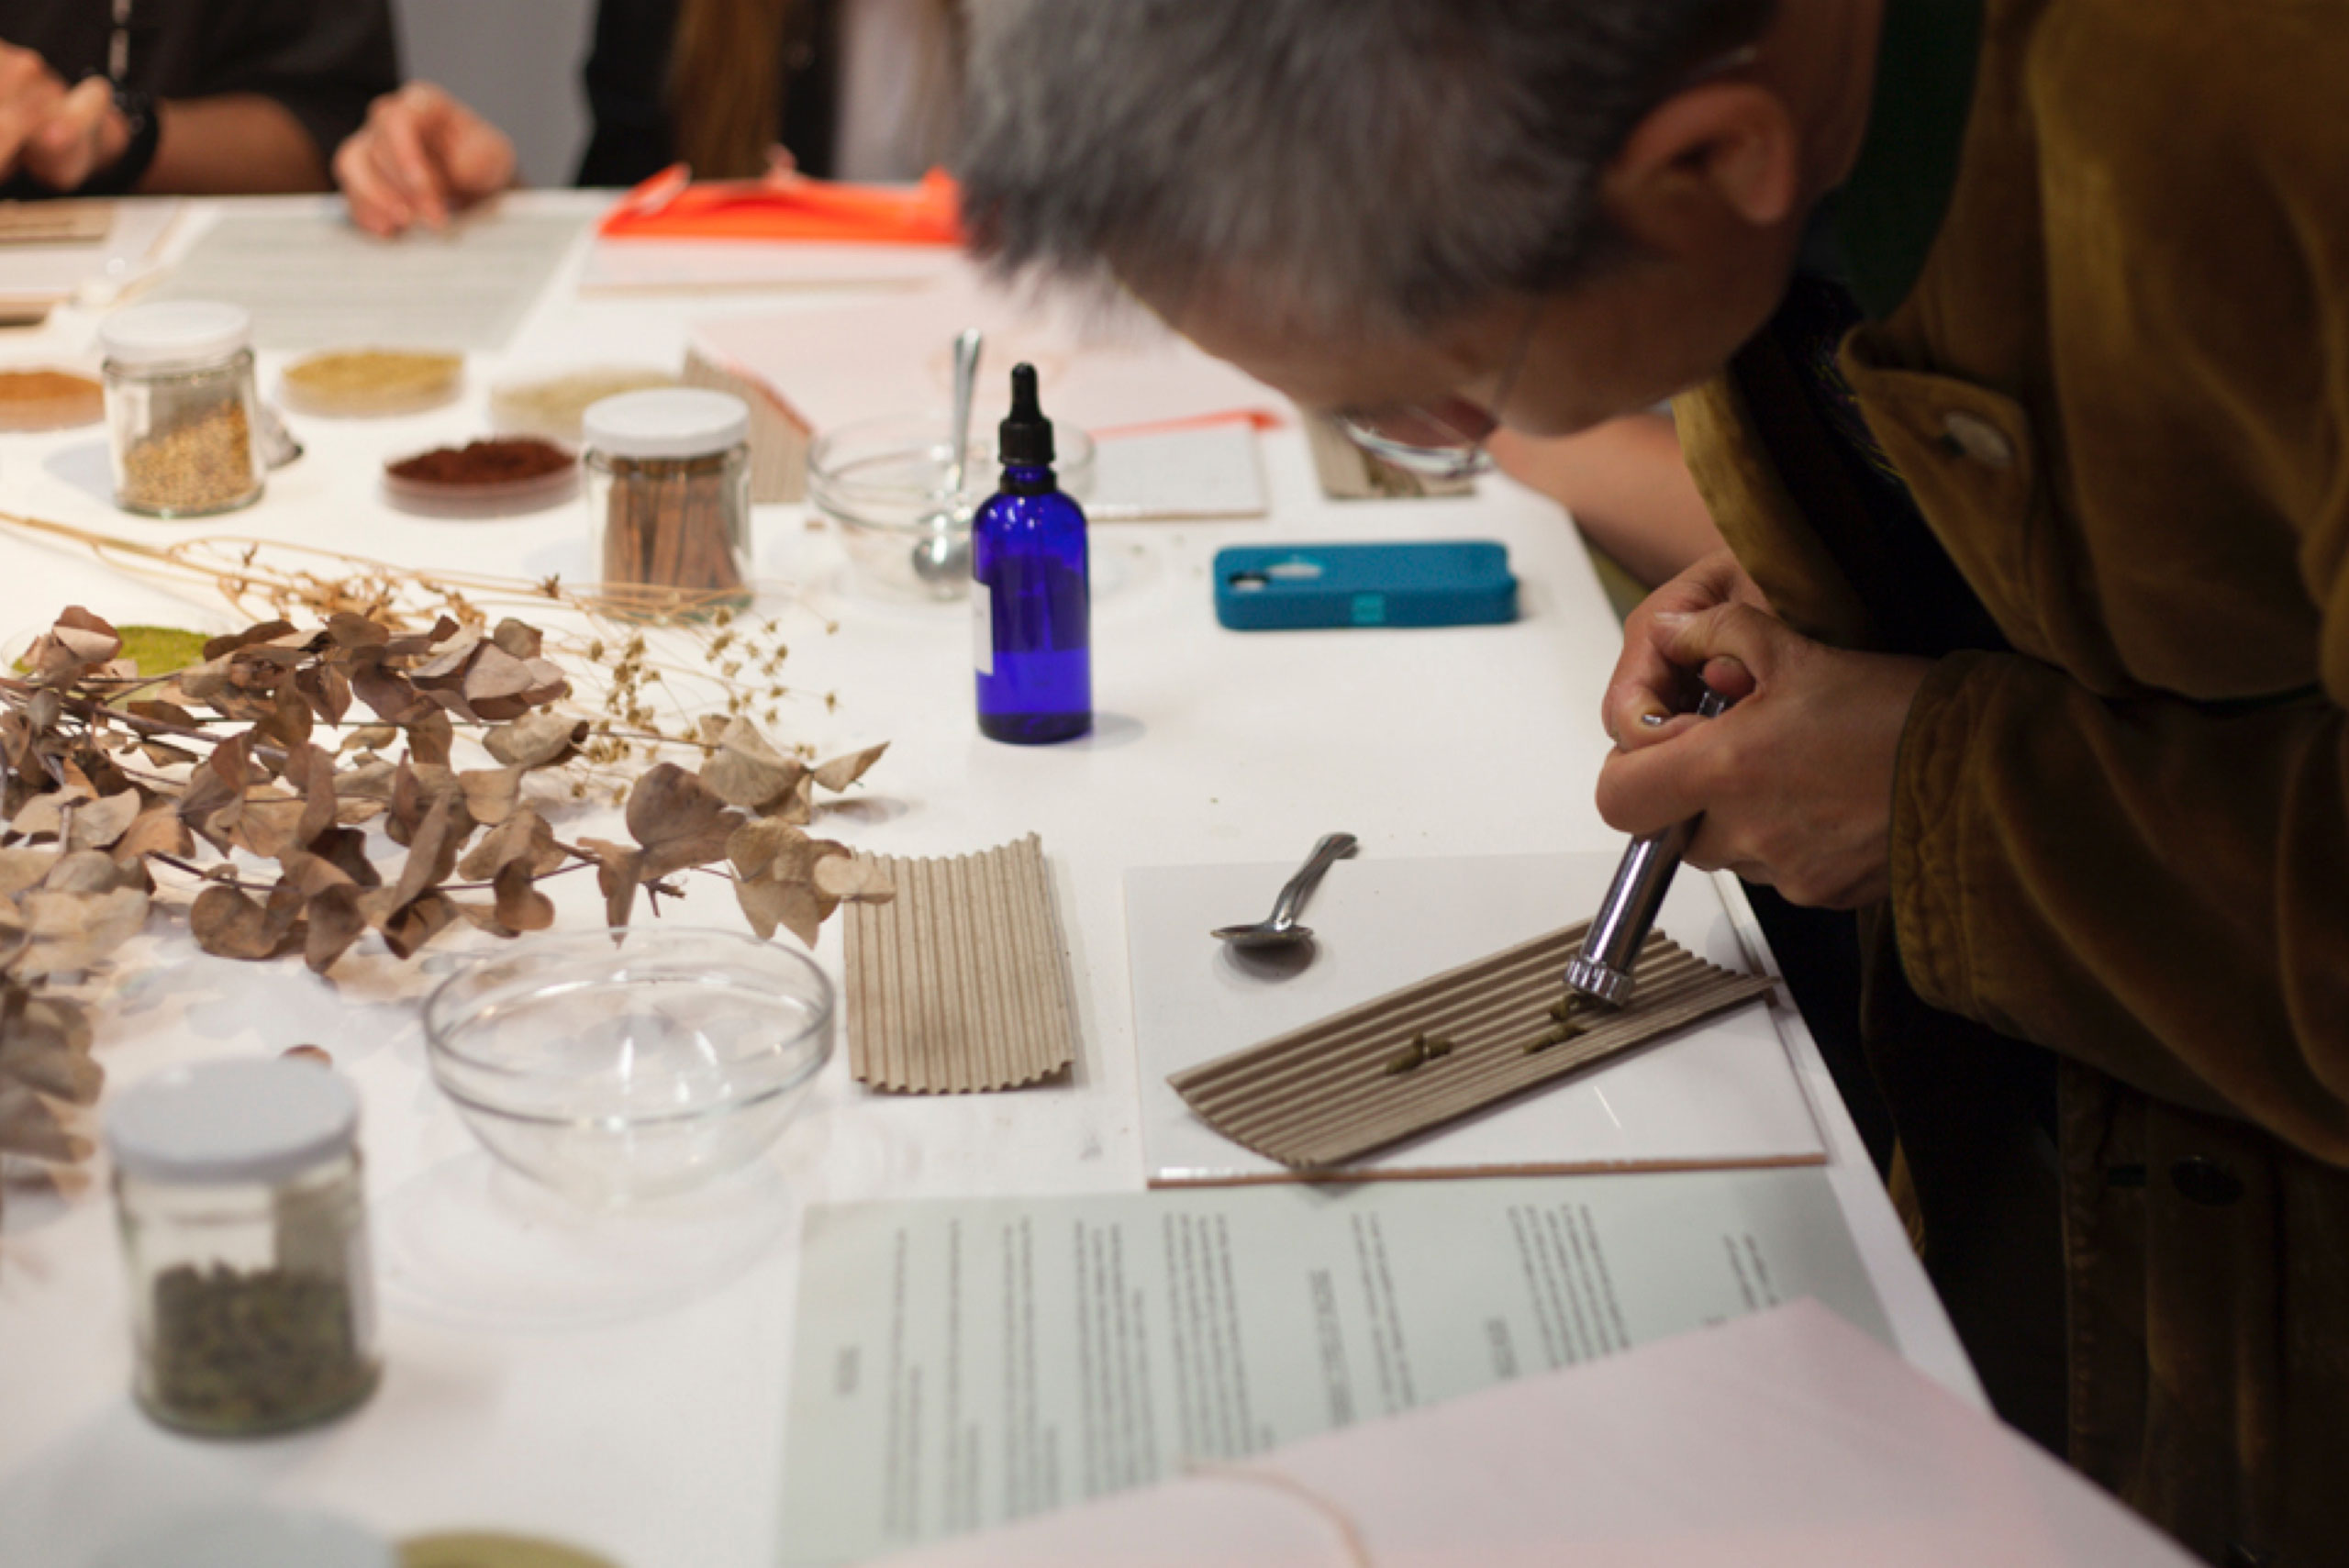 Grains for Thoughts - sensory workshop by Heka London